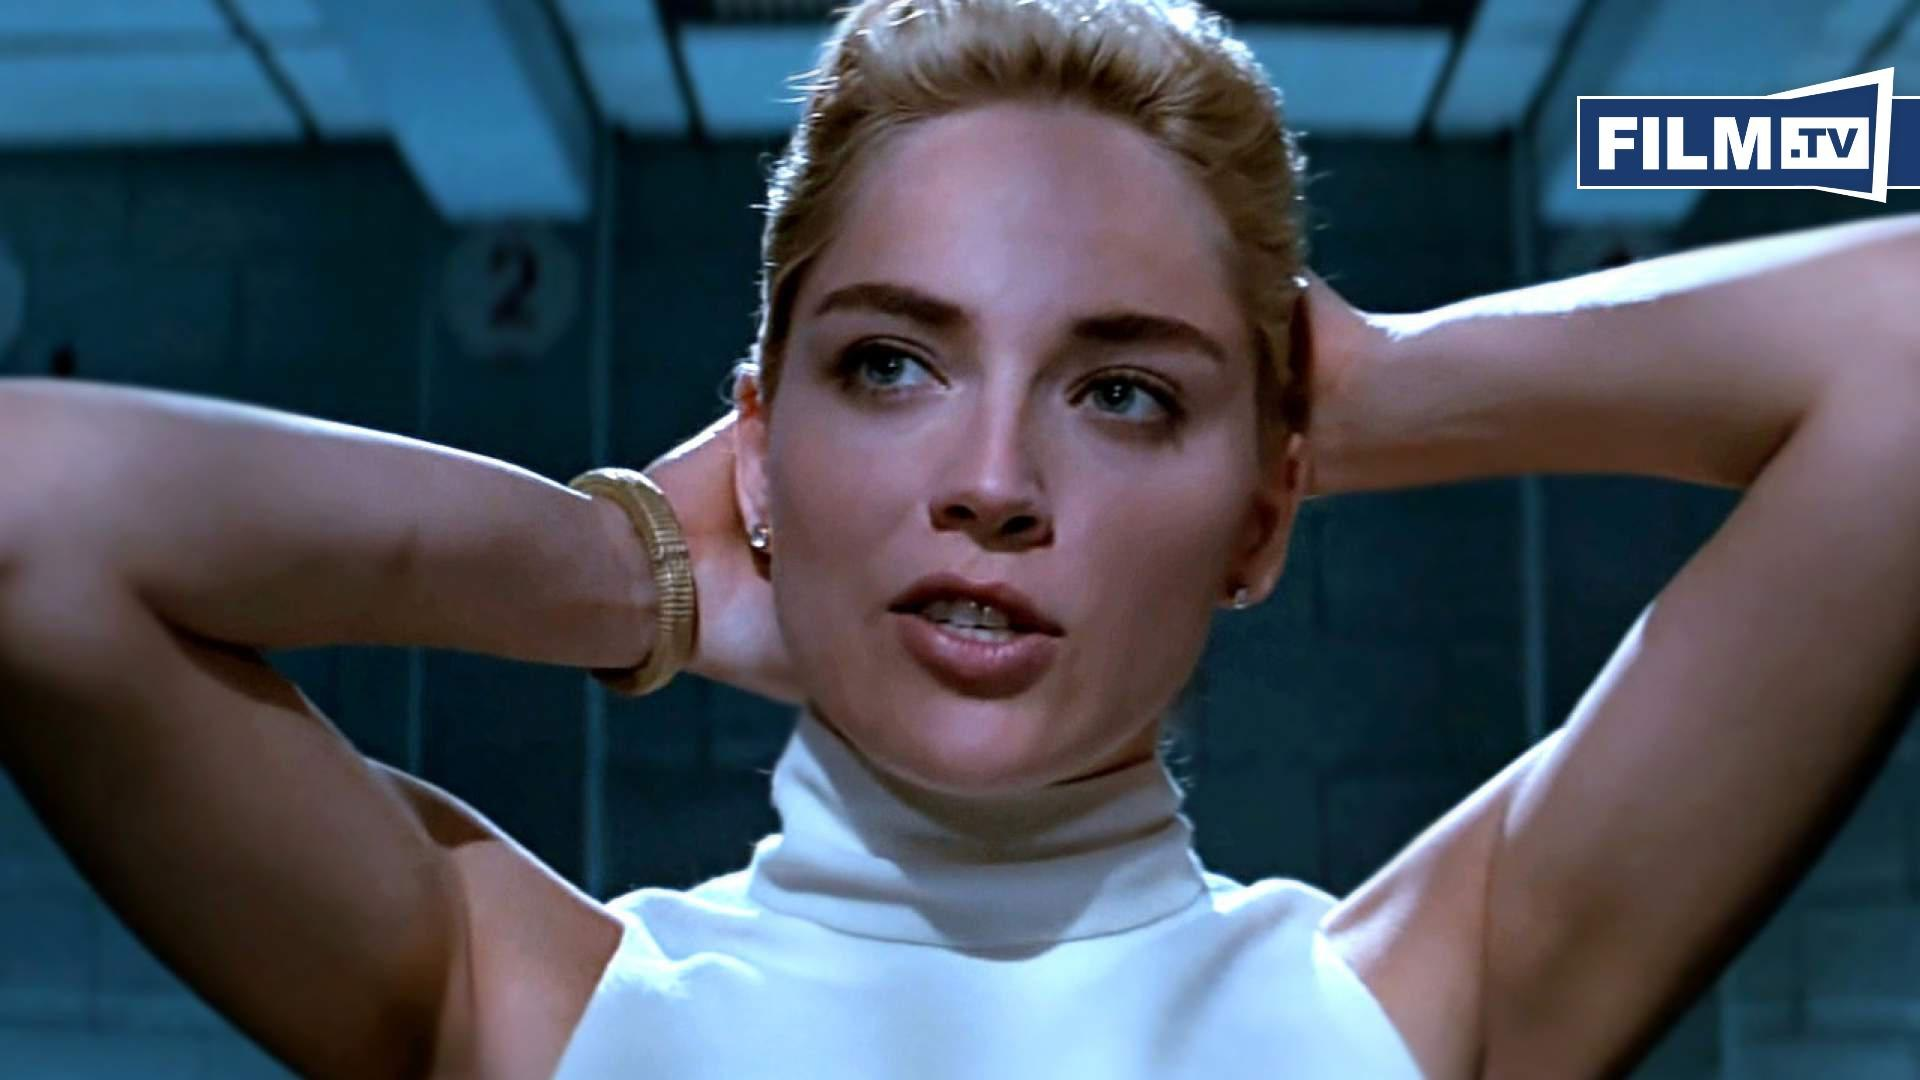 BASIC INSTINCT FILM TRAILER Trailer German Deutsch (1992)